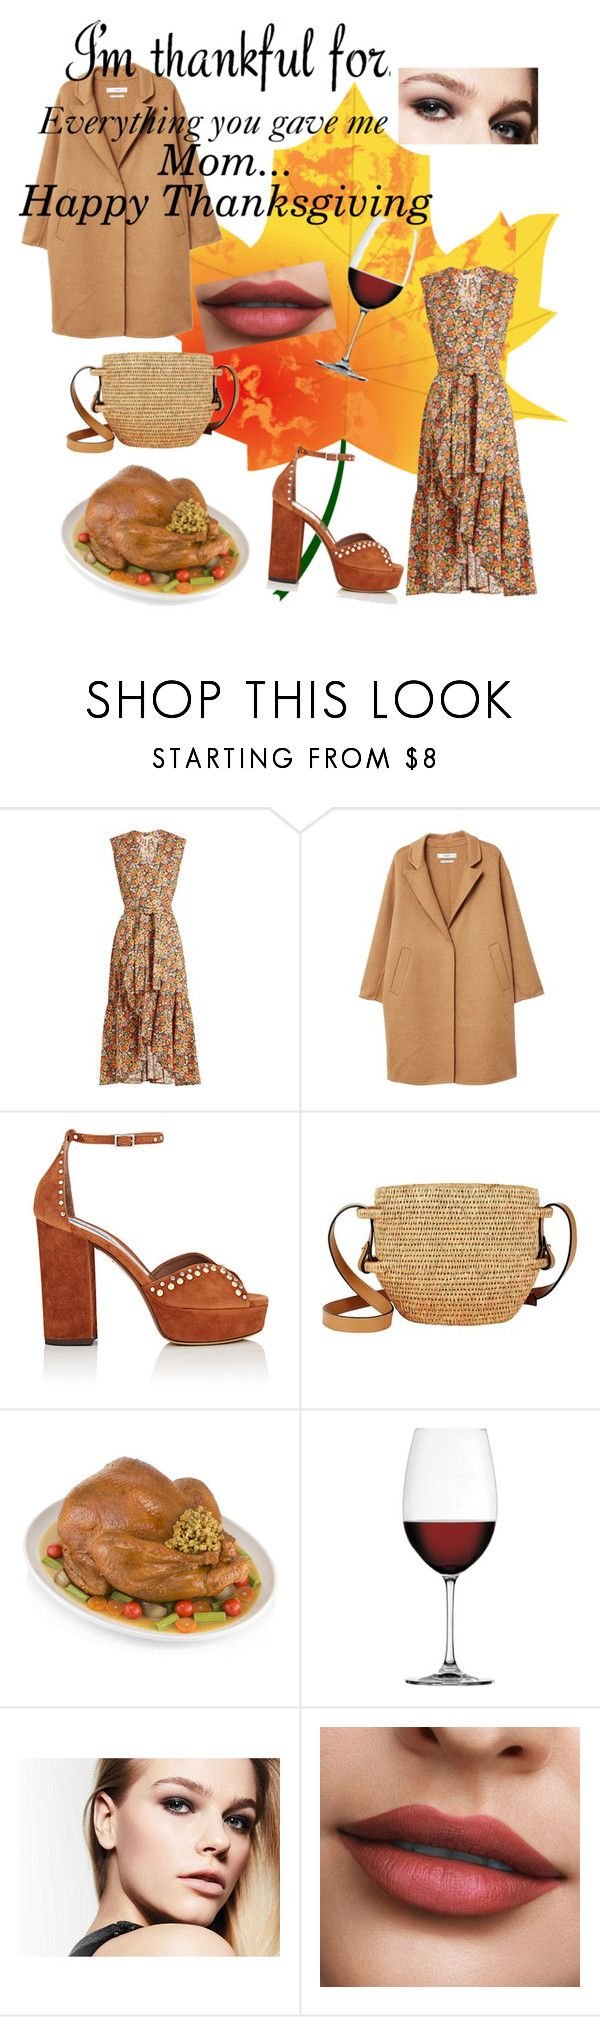 """""""Happy Thanksgiving"""" by naepoppo on Polyvore featuring Rebecca Taylor, MANGO, Tabitha Simmons, Khokho, Nachtmann, orange and thanksgiving"""